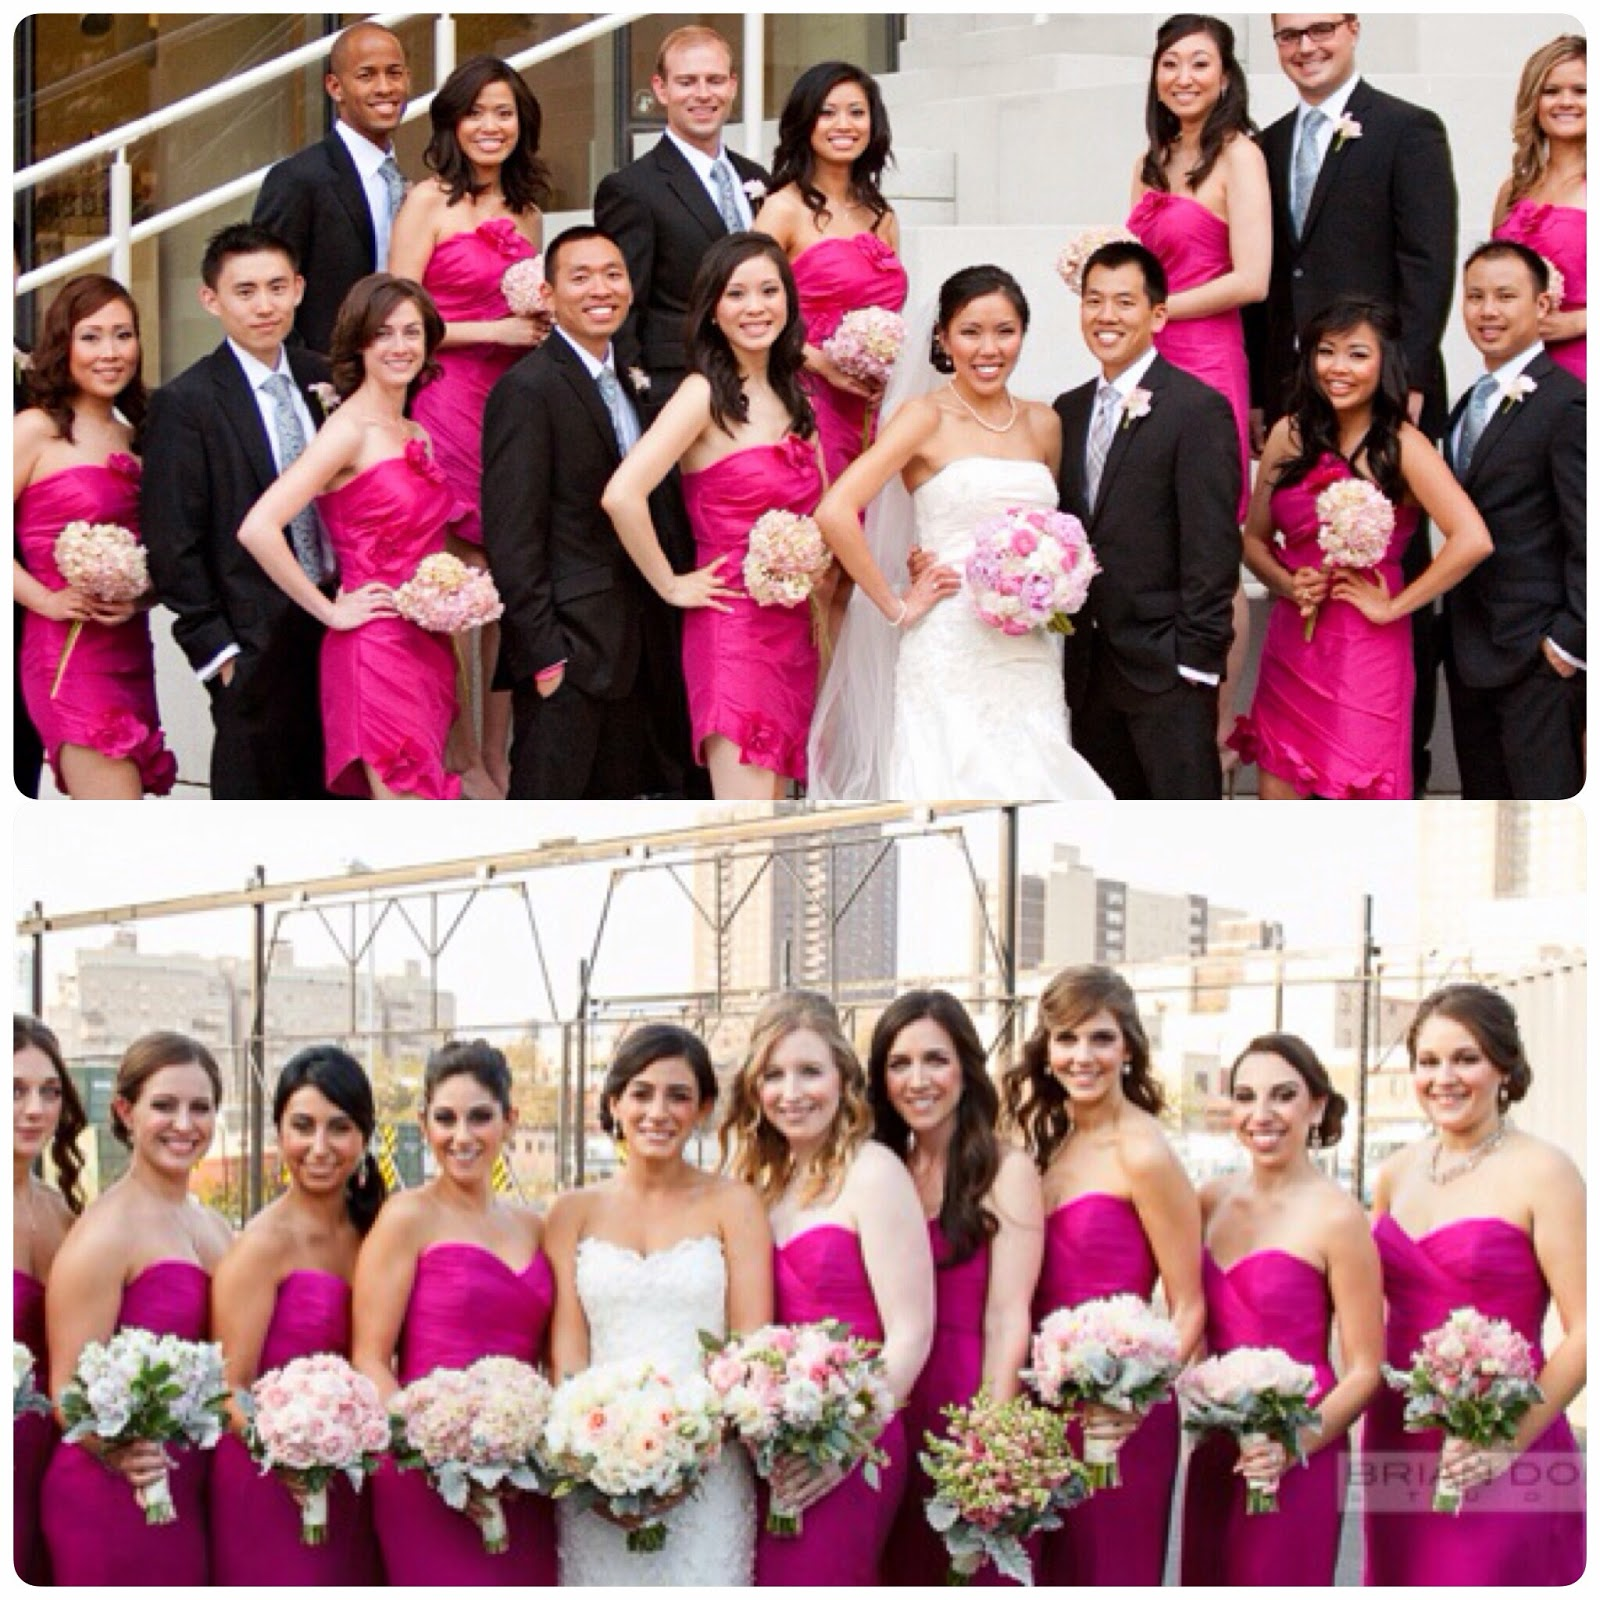 fuchsia bridesmaids dresses